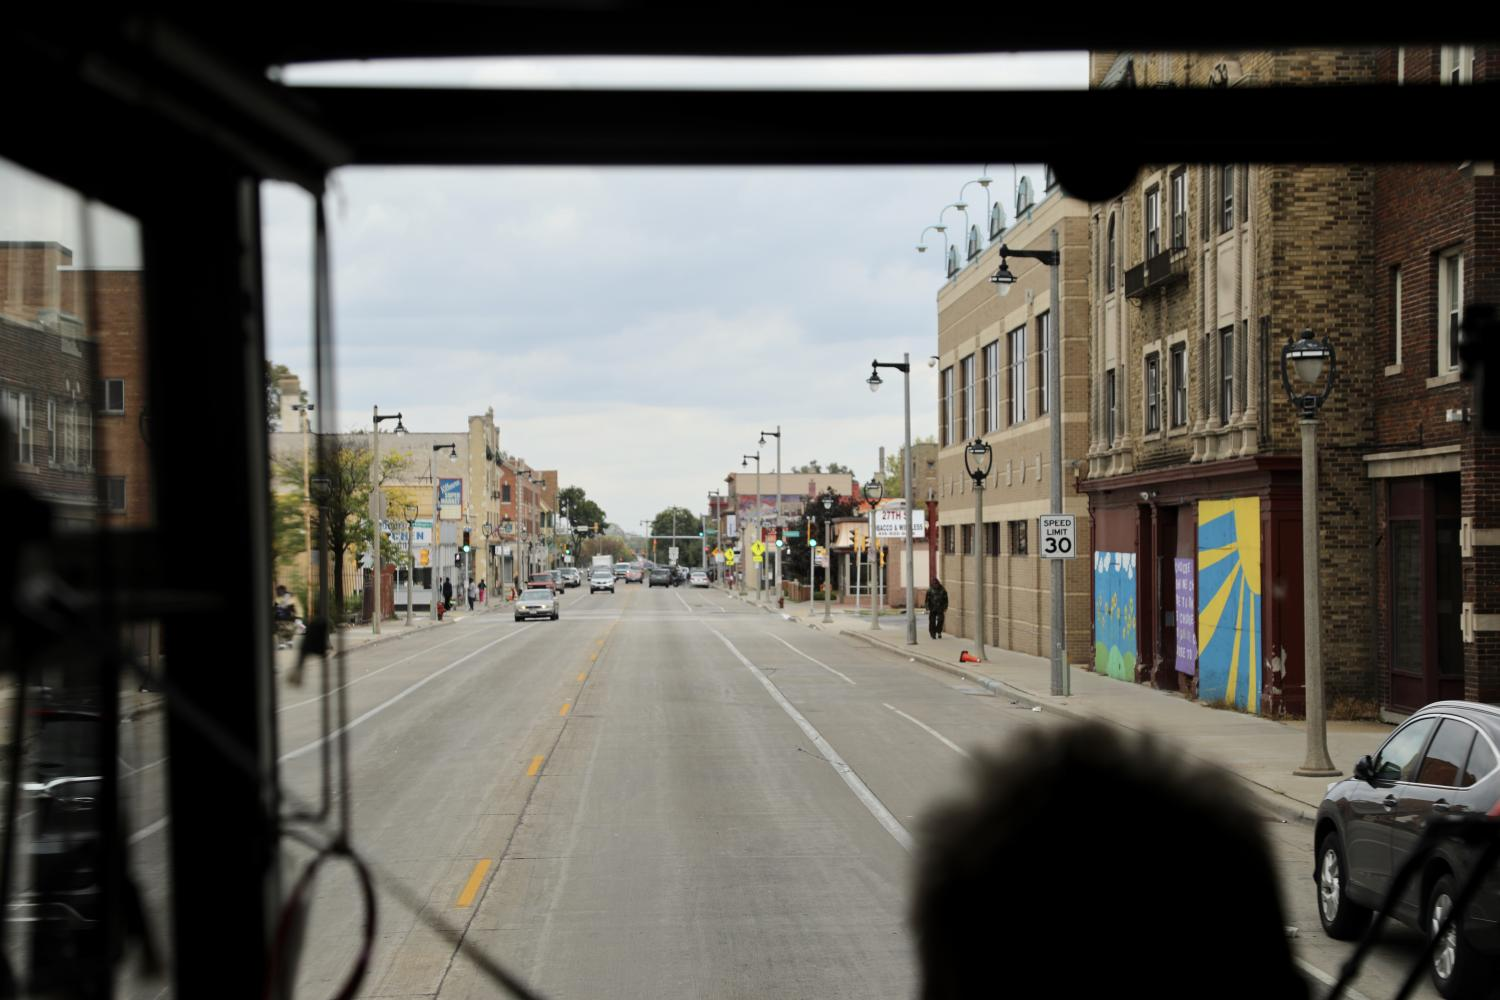 The view out the front window of the bus headed down a street in the Near West Side.